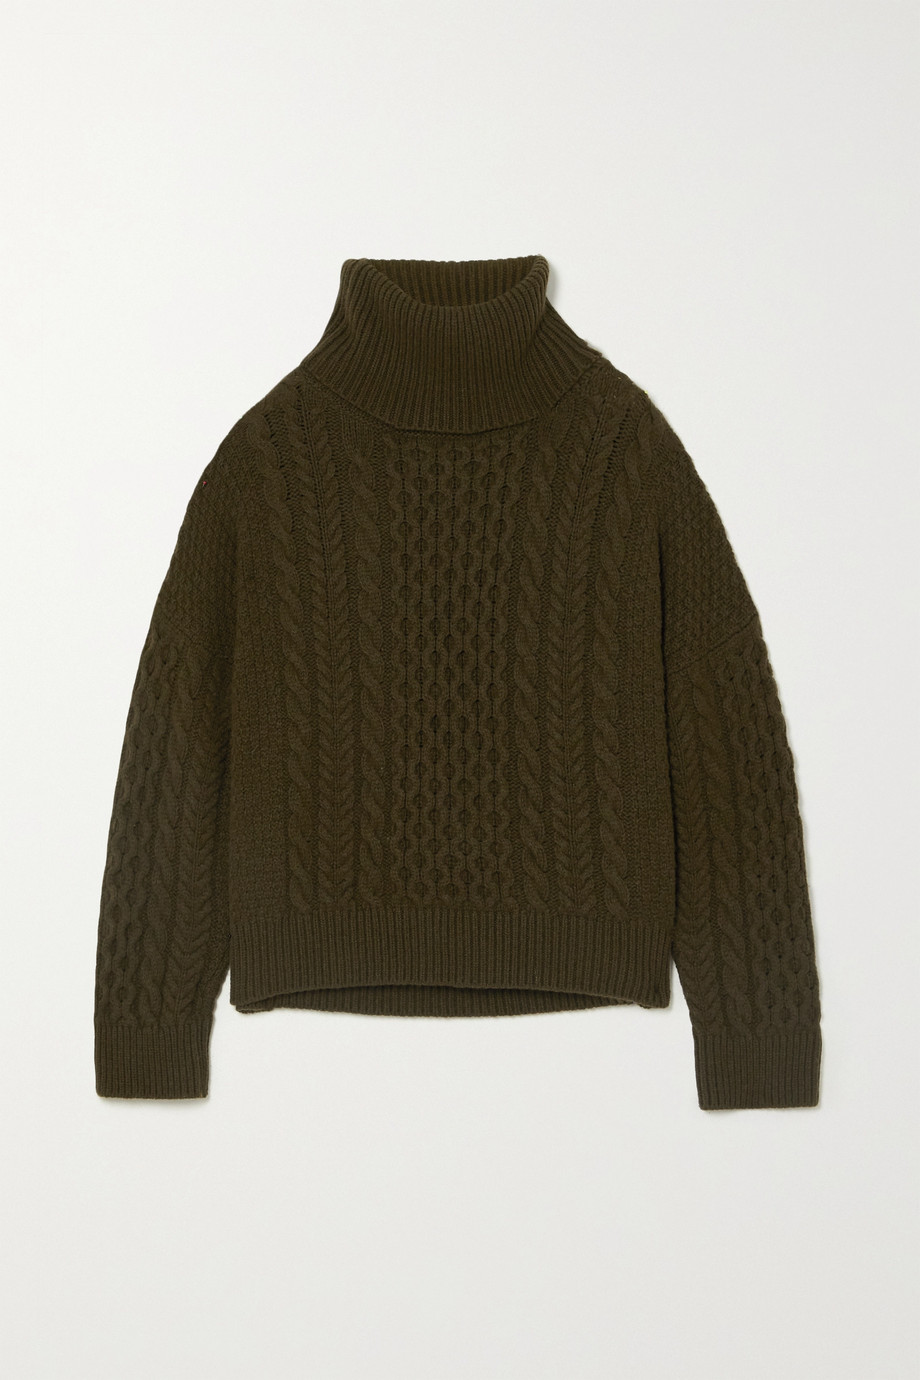 &Daughter + NET SUSTAIN Alva cable-knit wool turtleneck sweater